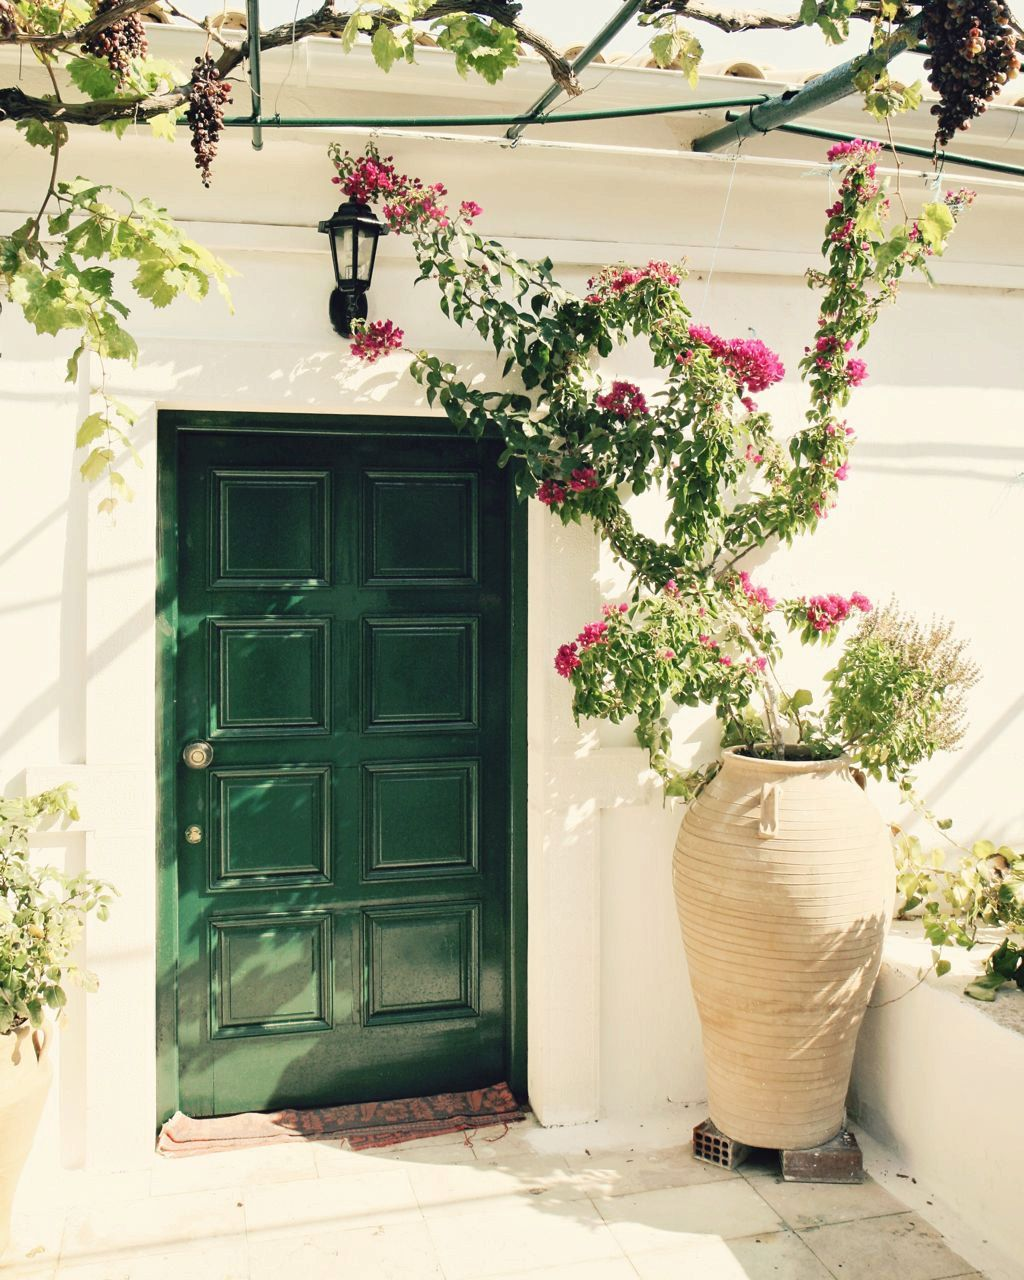 Mediterranean Home Colors Exterior: Flowers - Mediterranean Home Decor